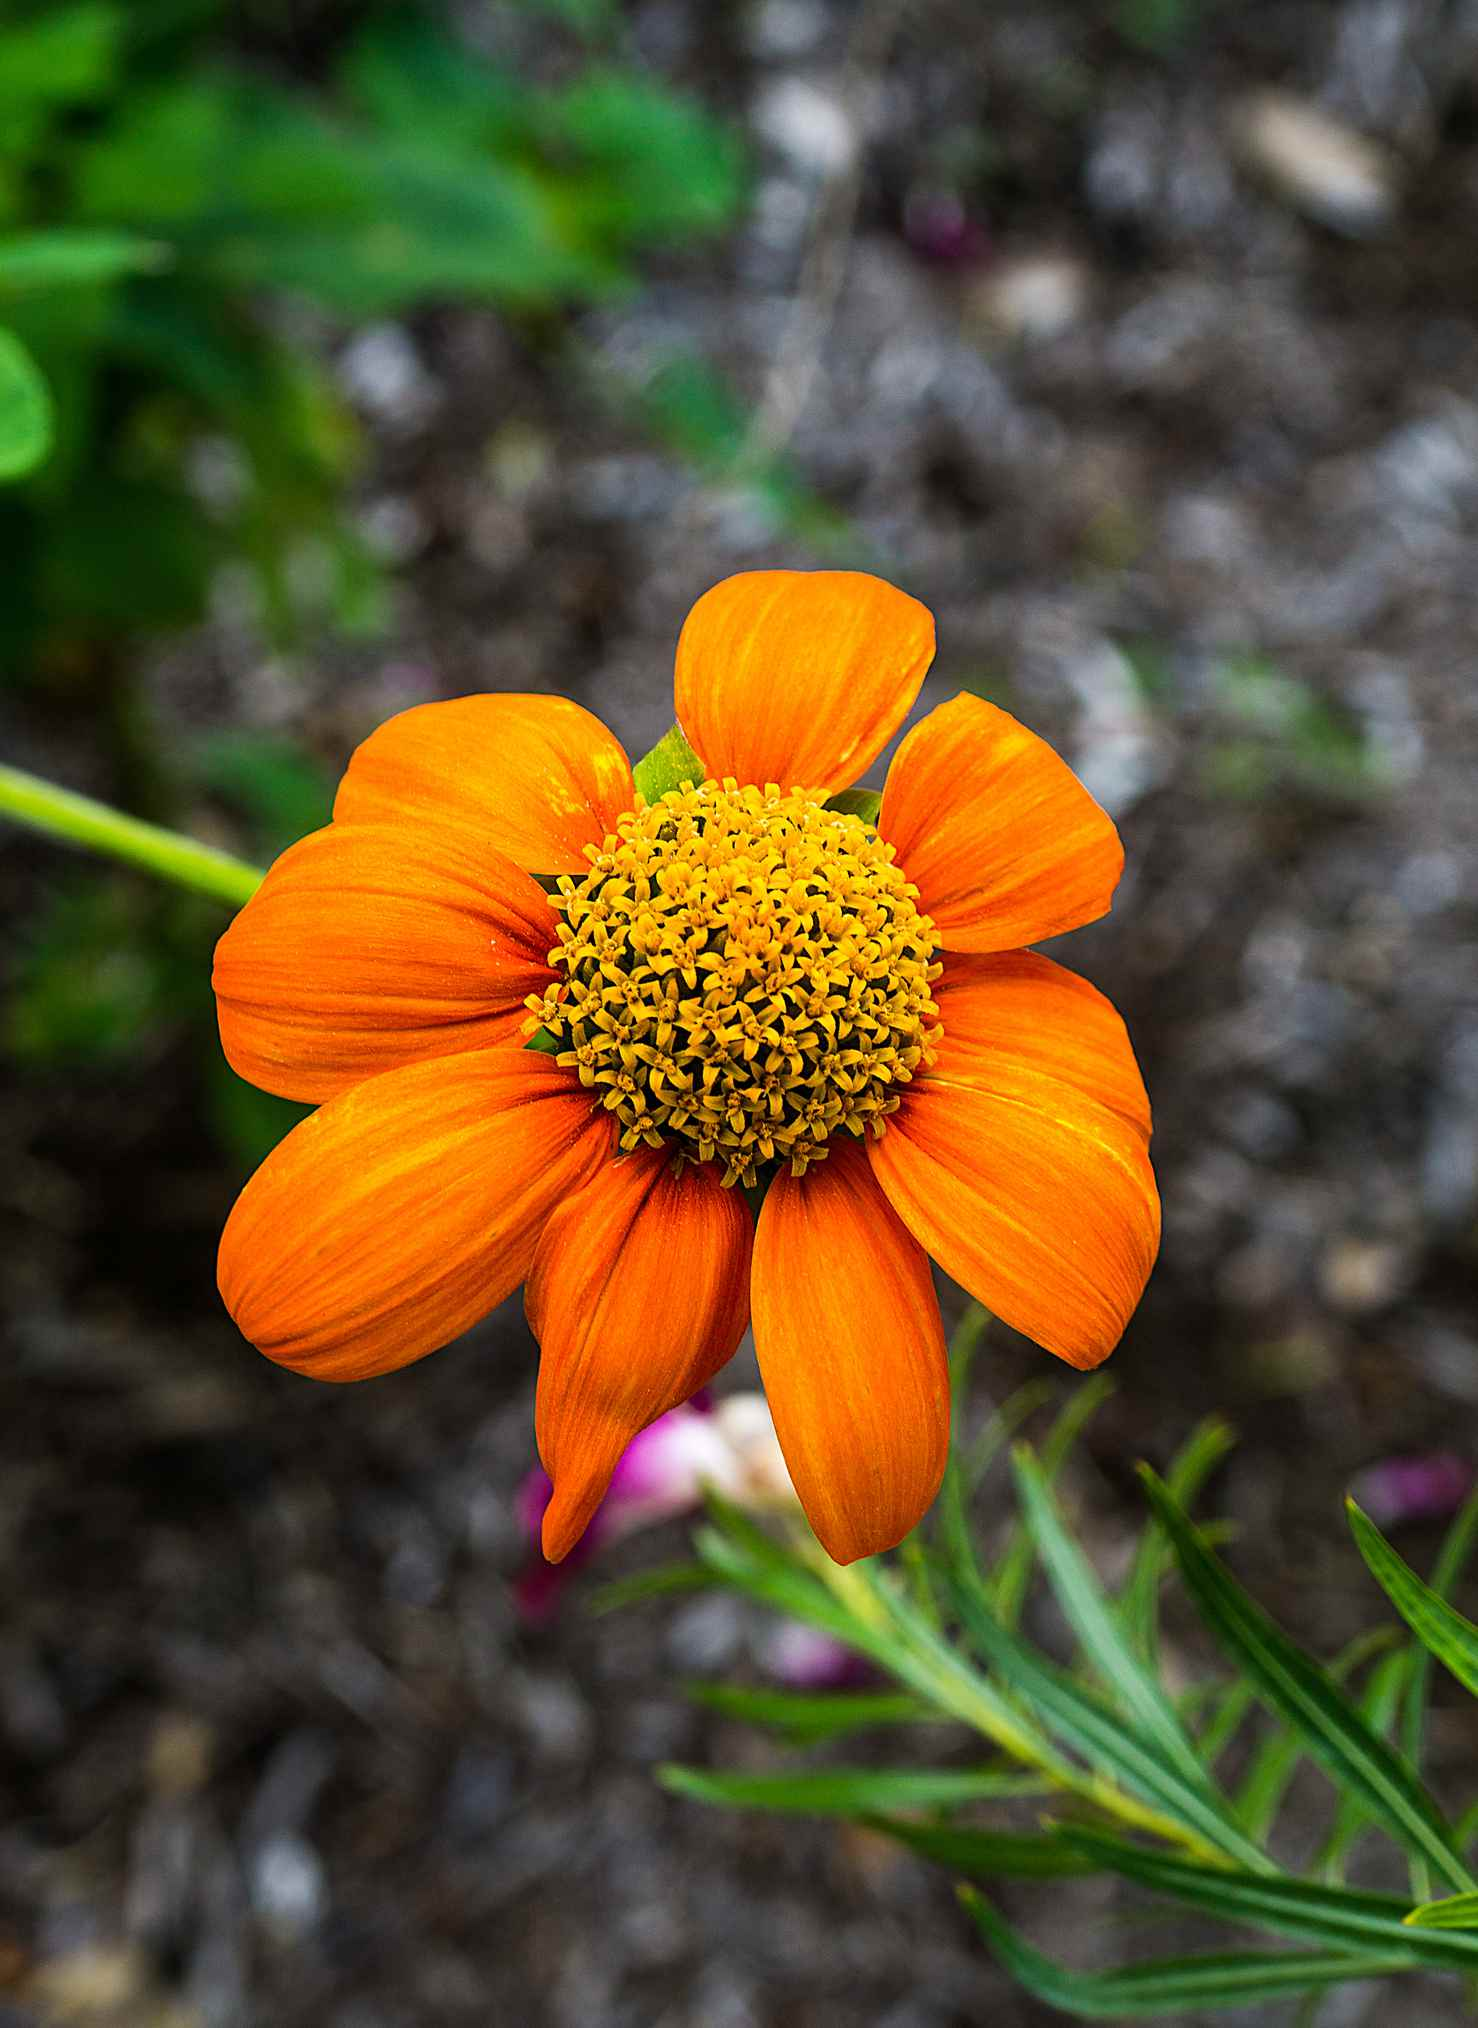 Mexican sunflower in bloom